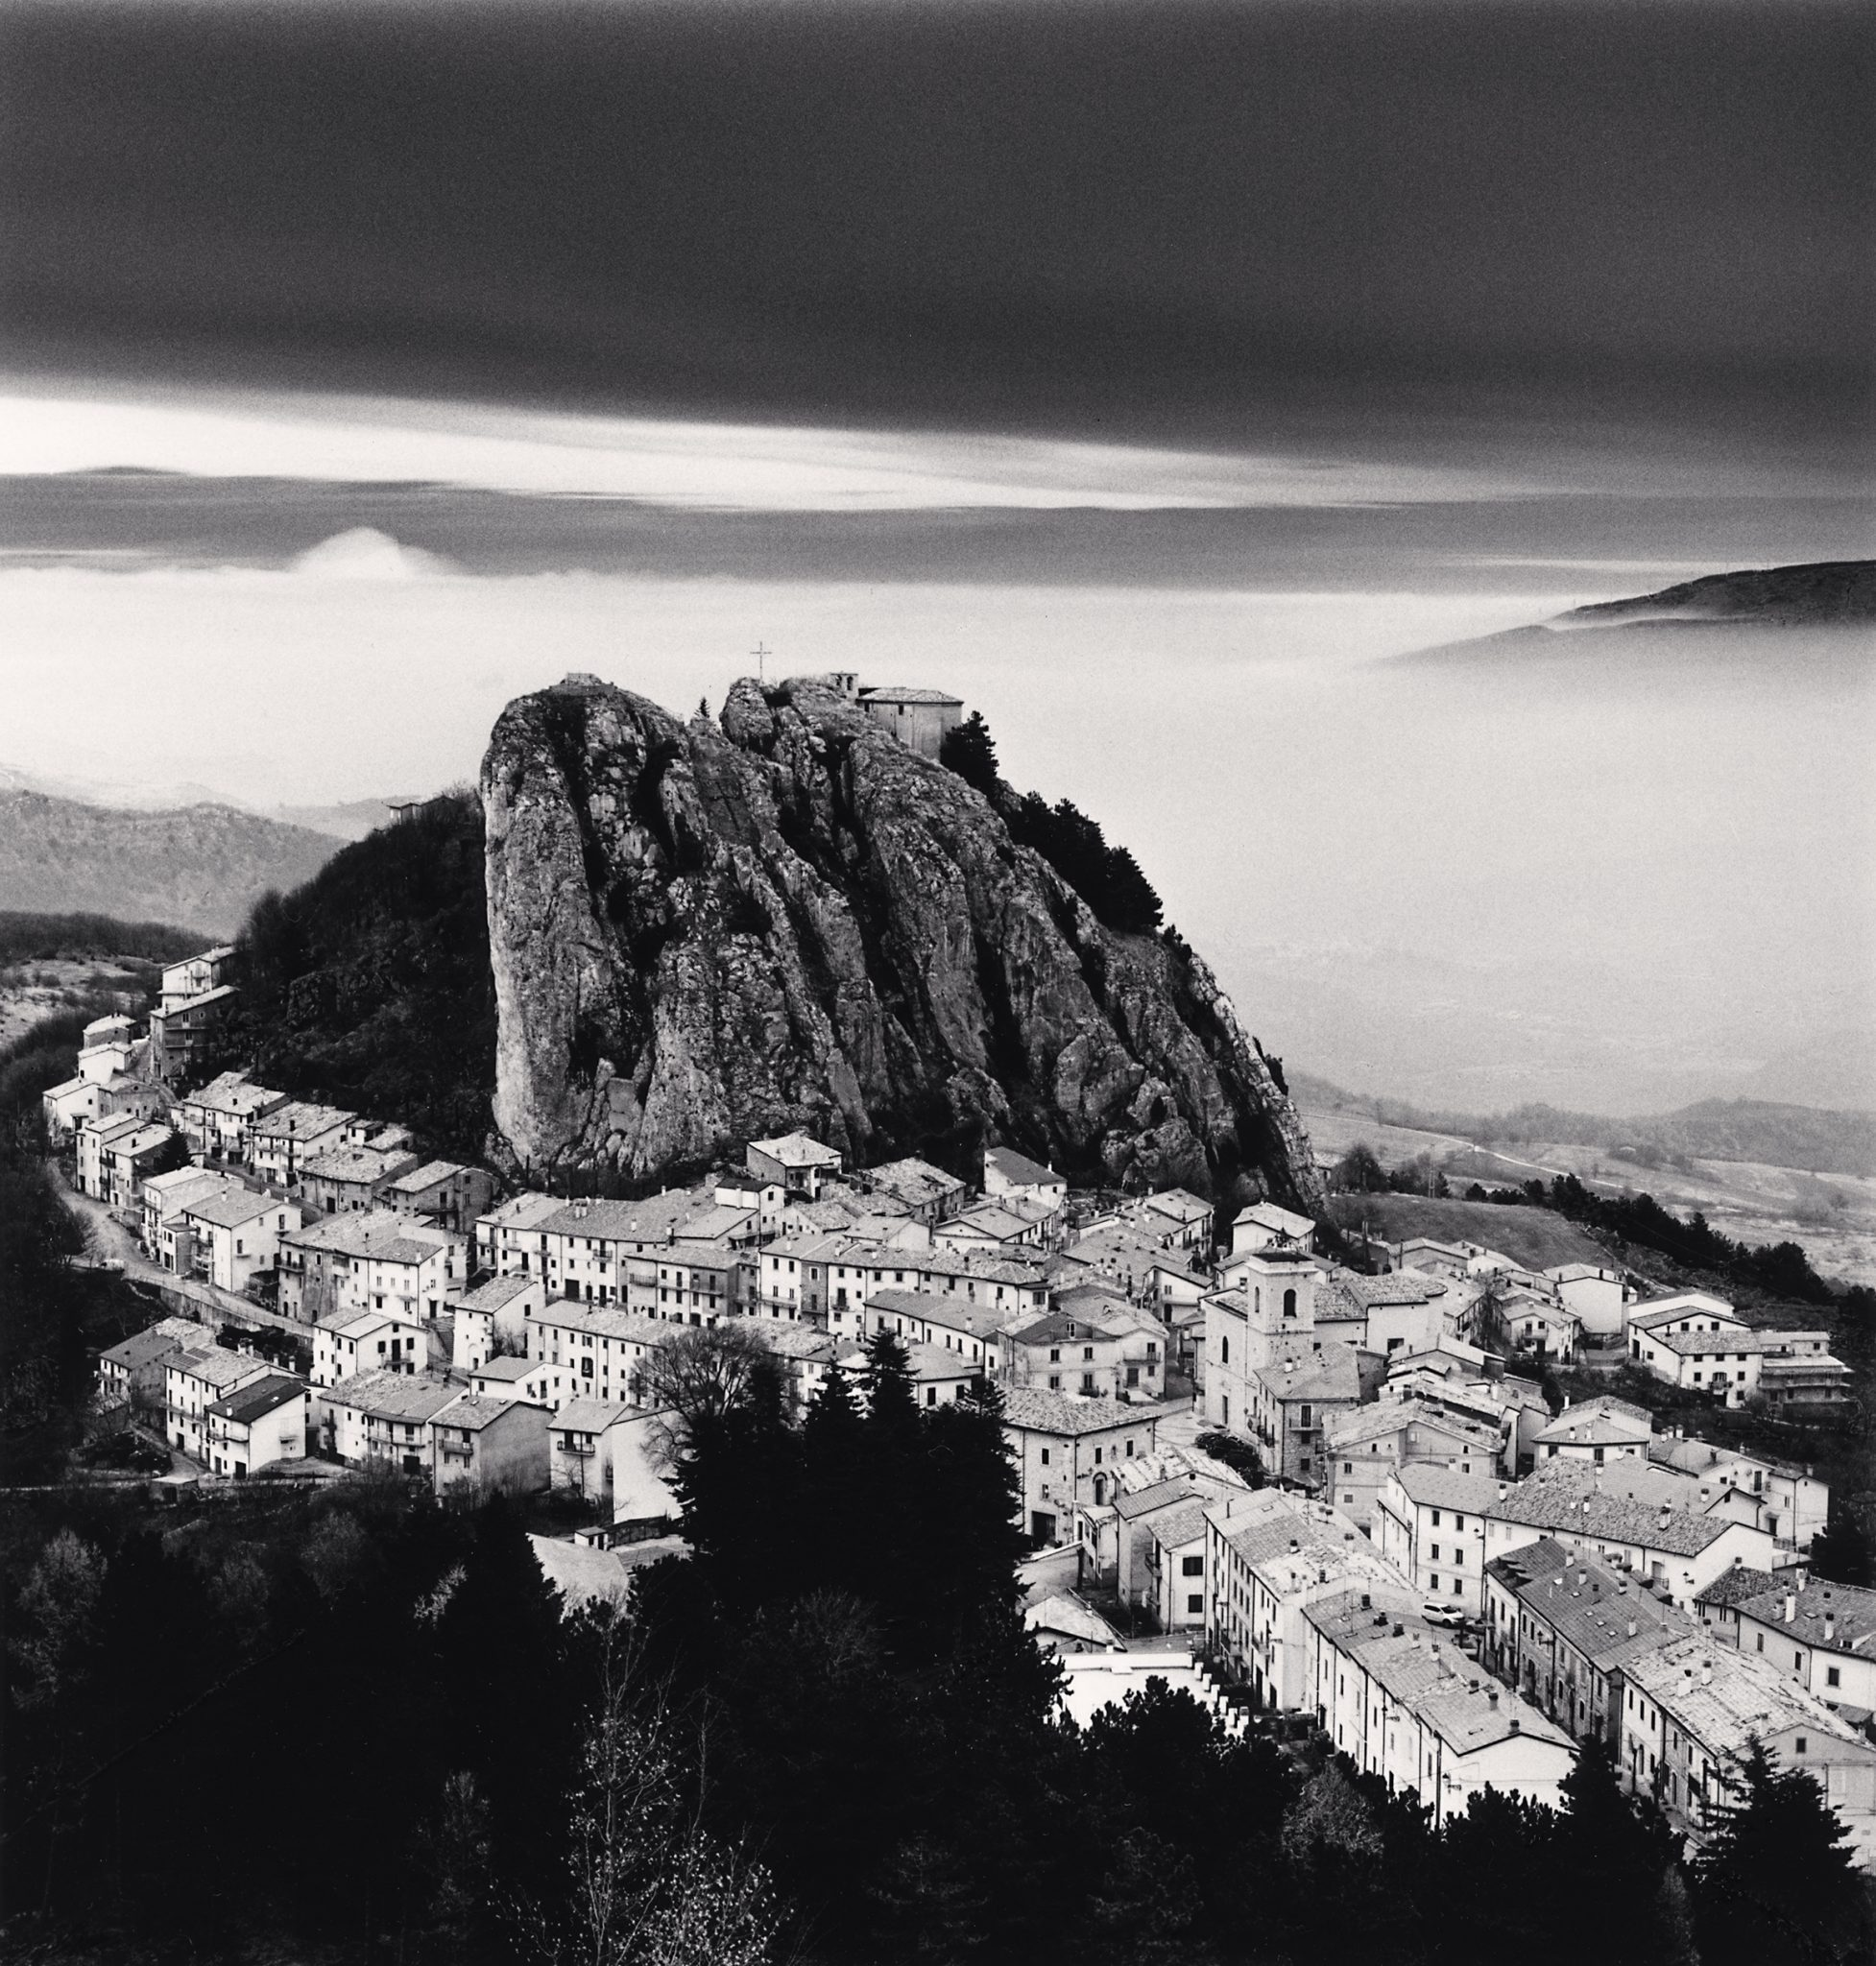 Approaching Clouds, Pizzoferato, Abruzzo, Italy. 2016. © Michael Kenna